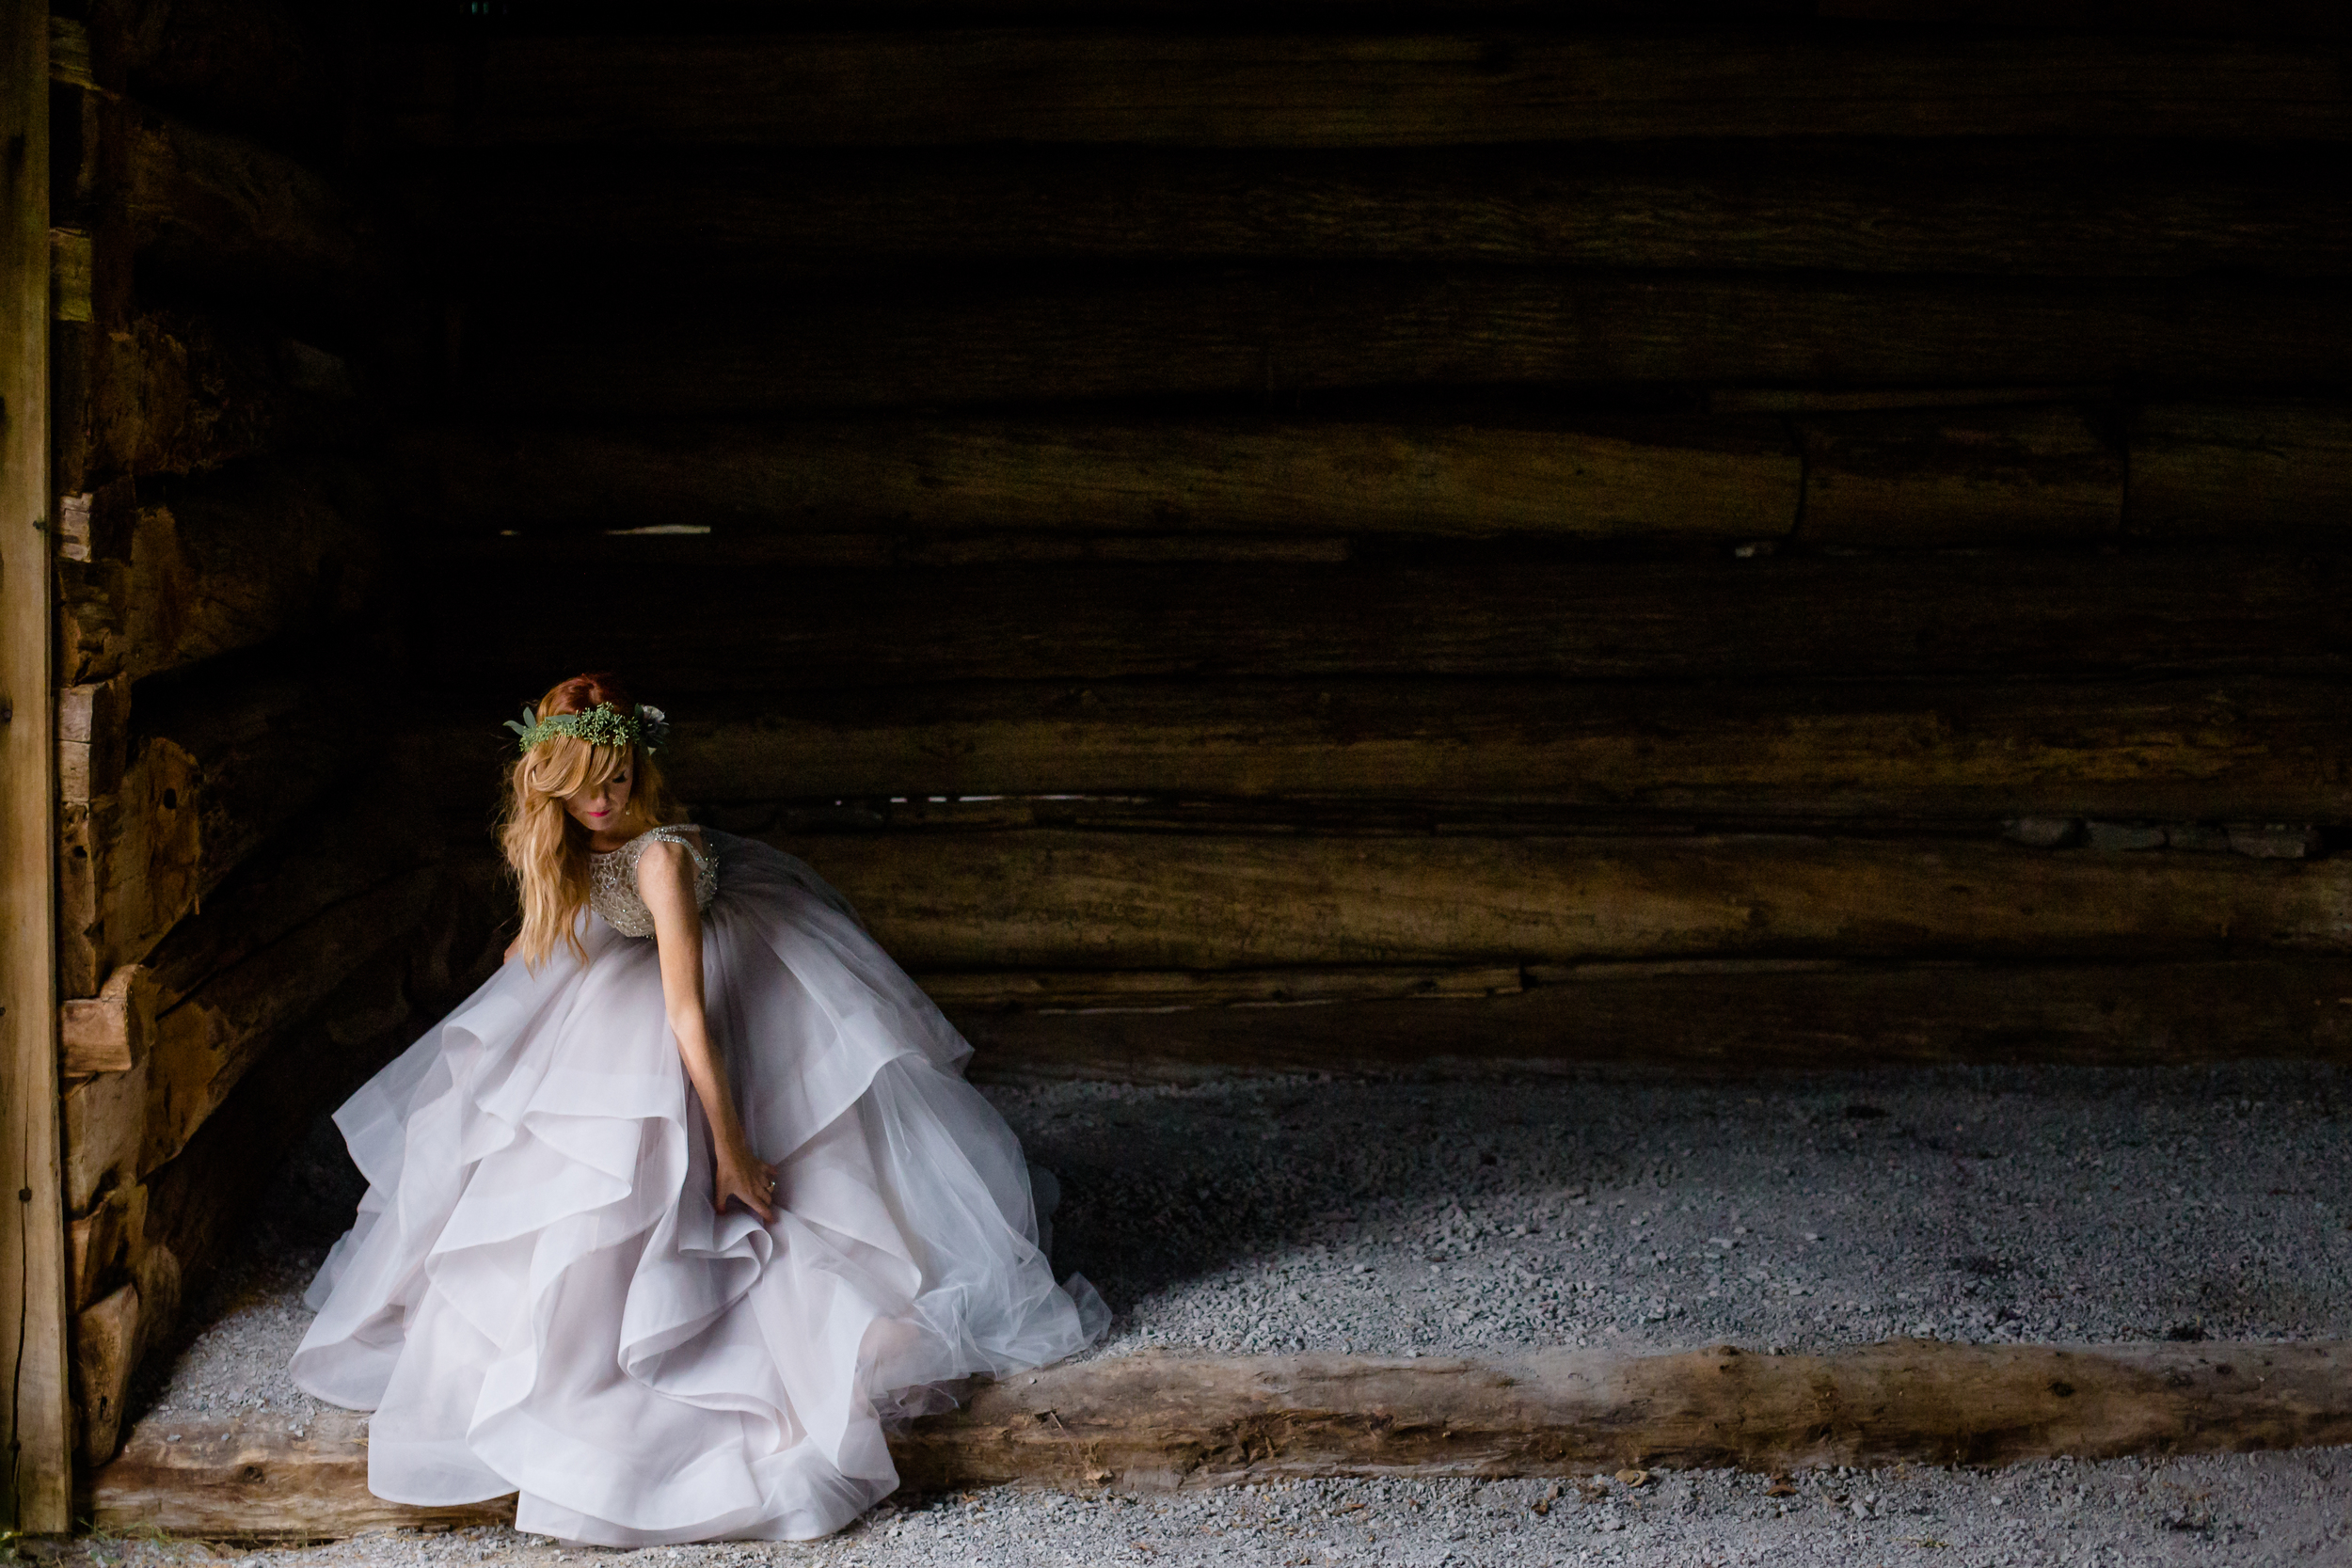 A photo of the bride displaying her wedding gown